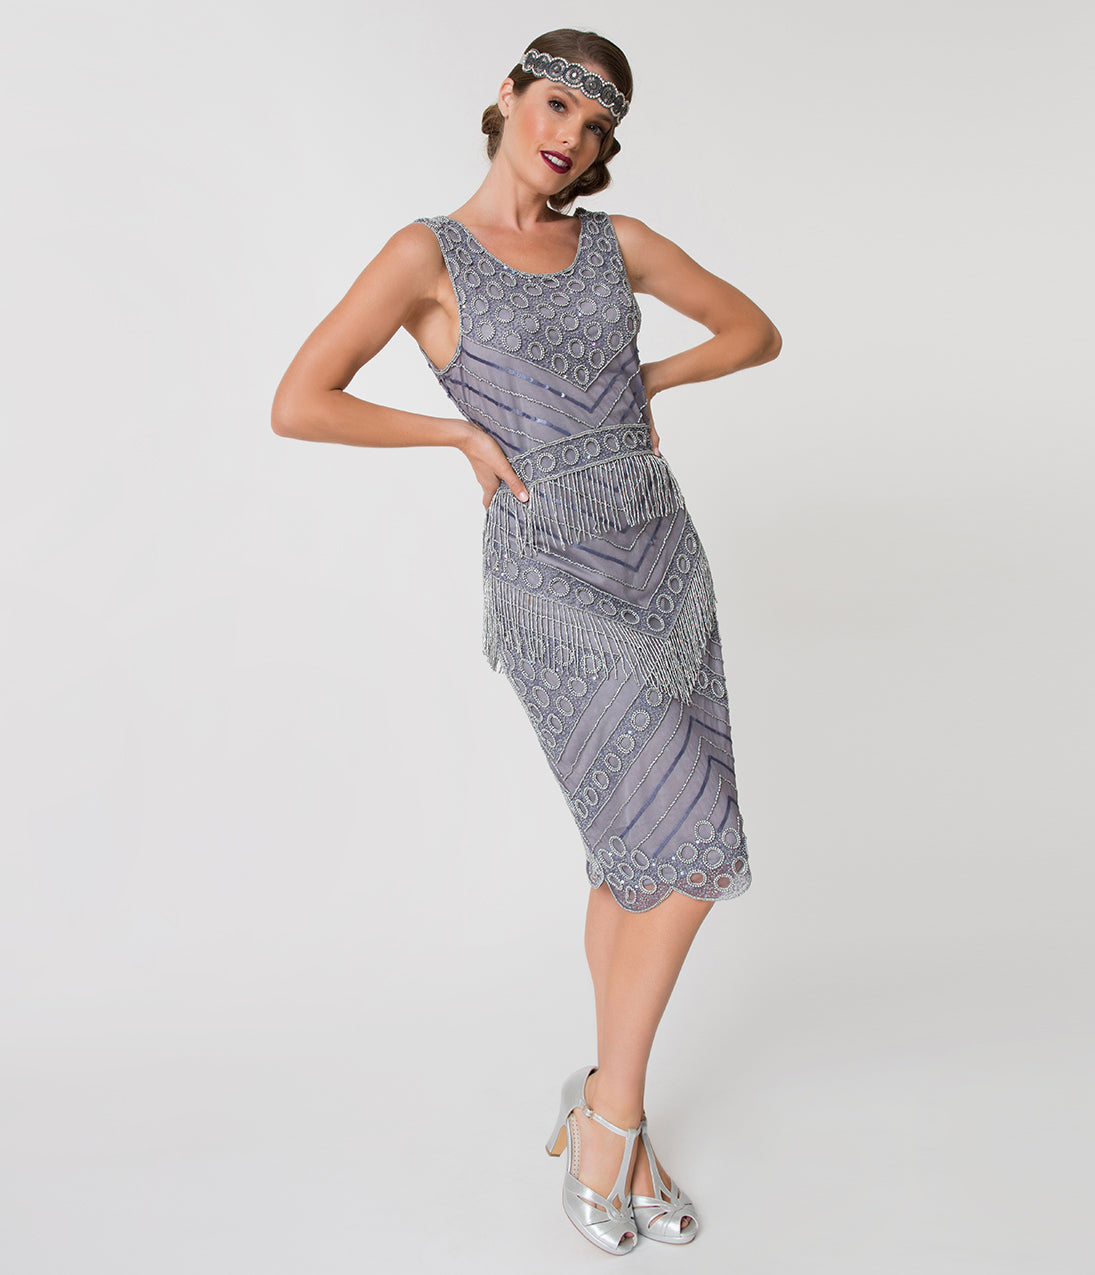 Downton Abbey Inspired Dresses Unique Vintage 1920S Style Lavender  Silver Beaded Manon Cocktail Dress $58.00 AT vintagedancer.com